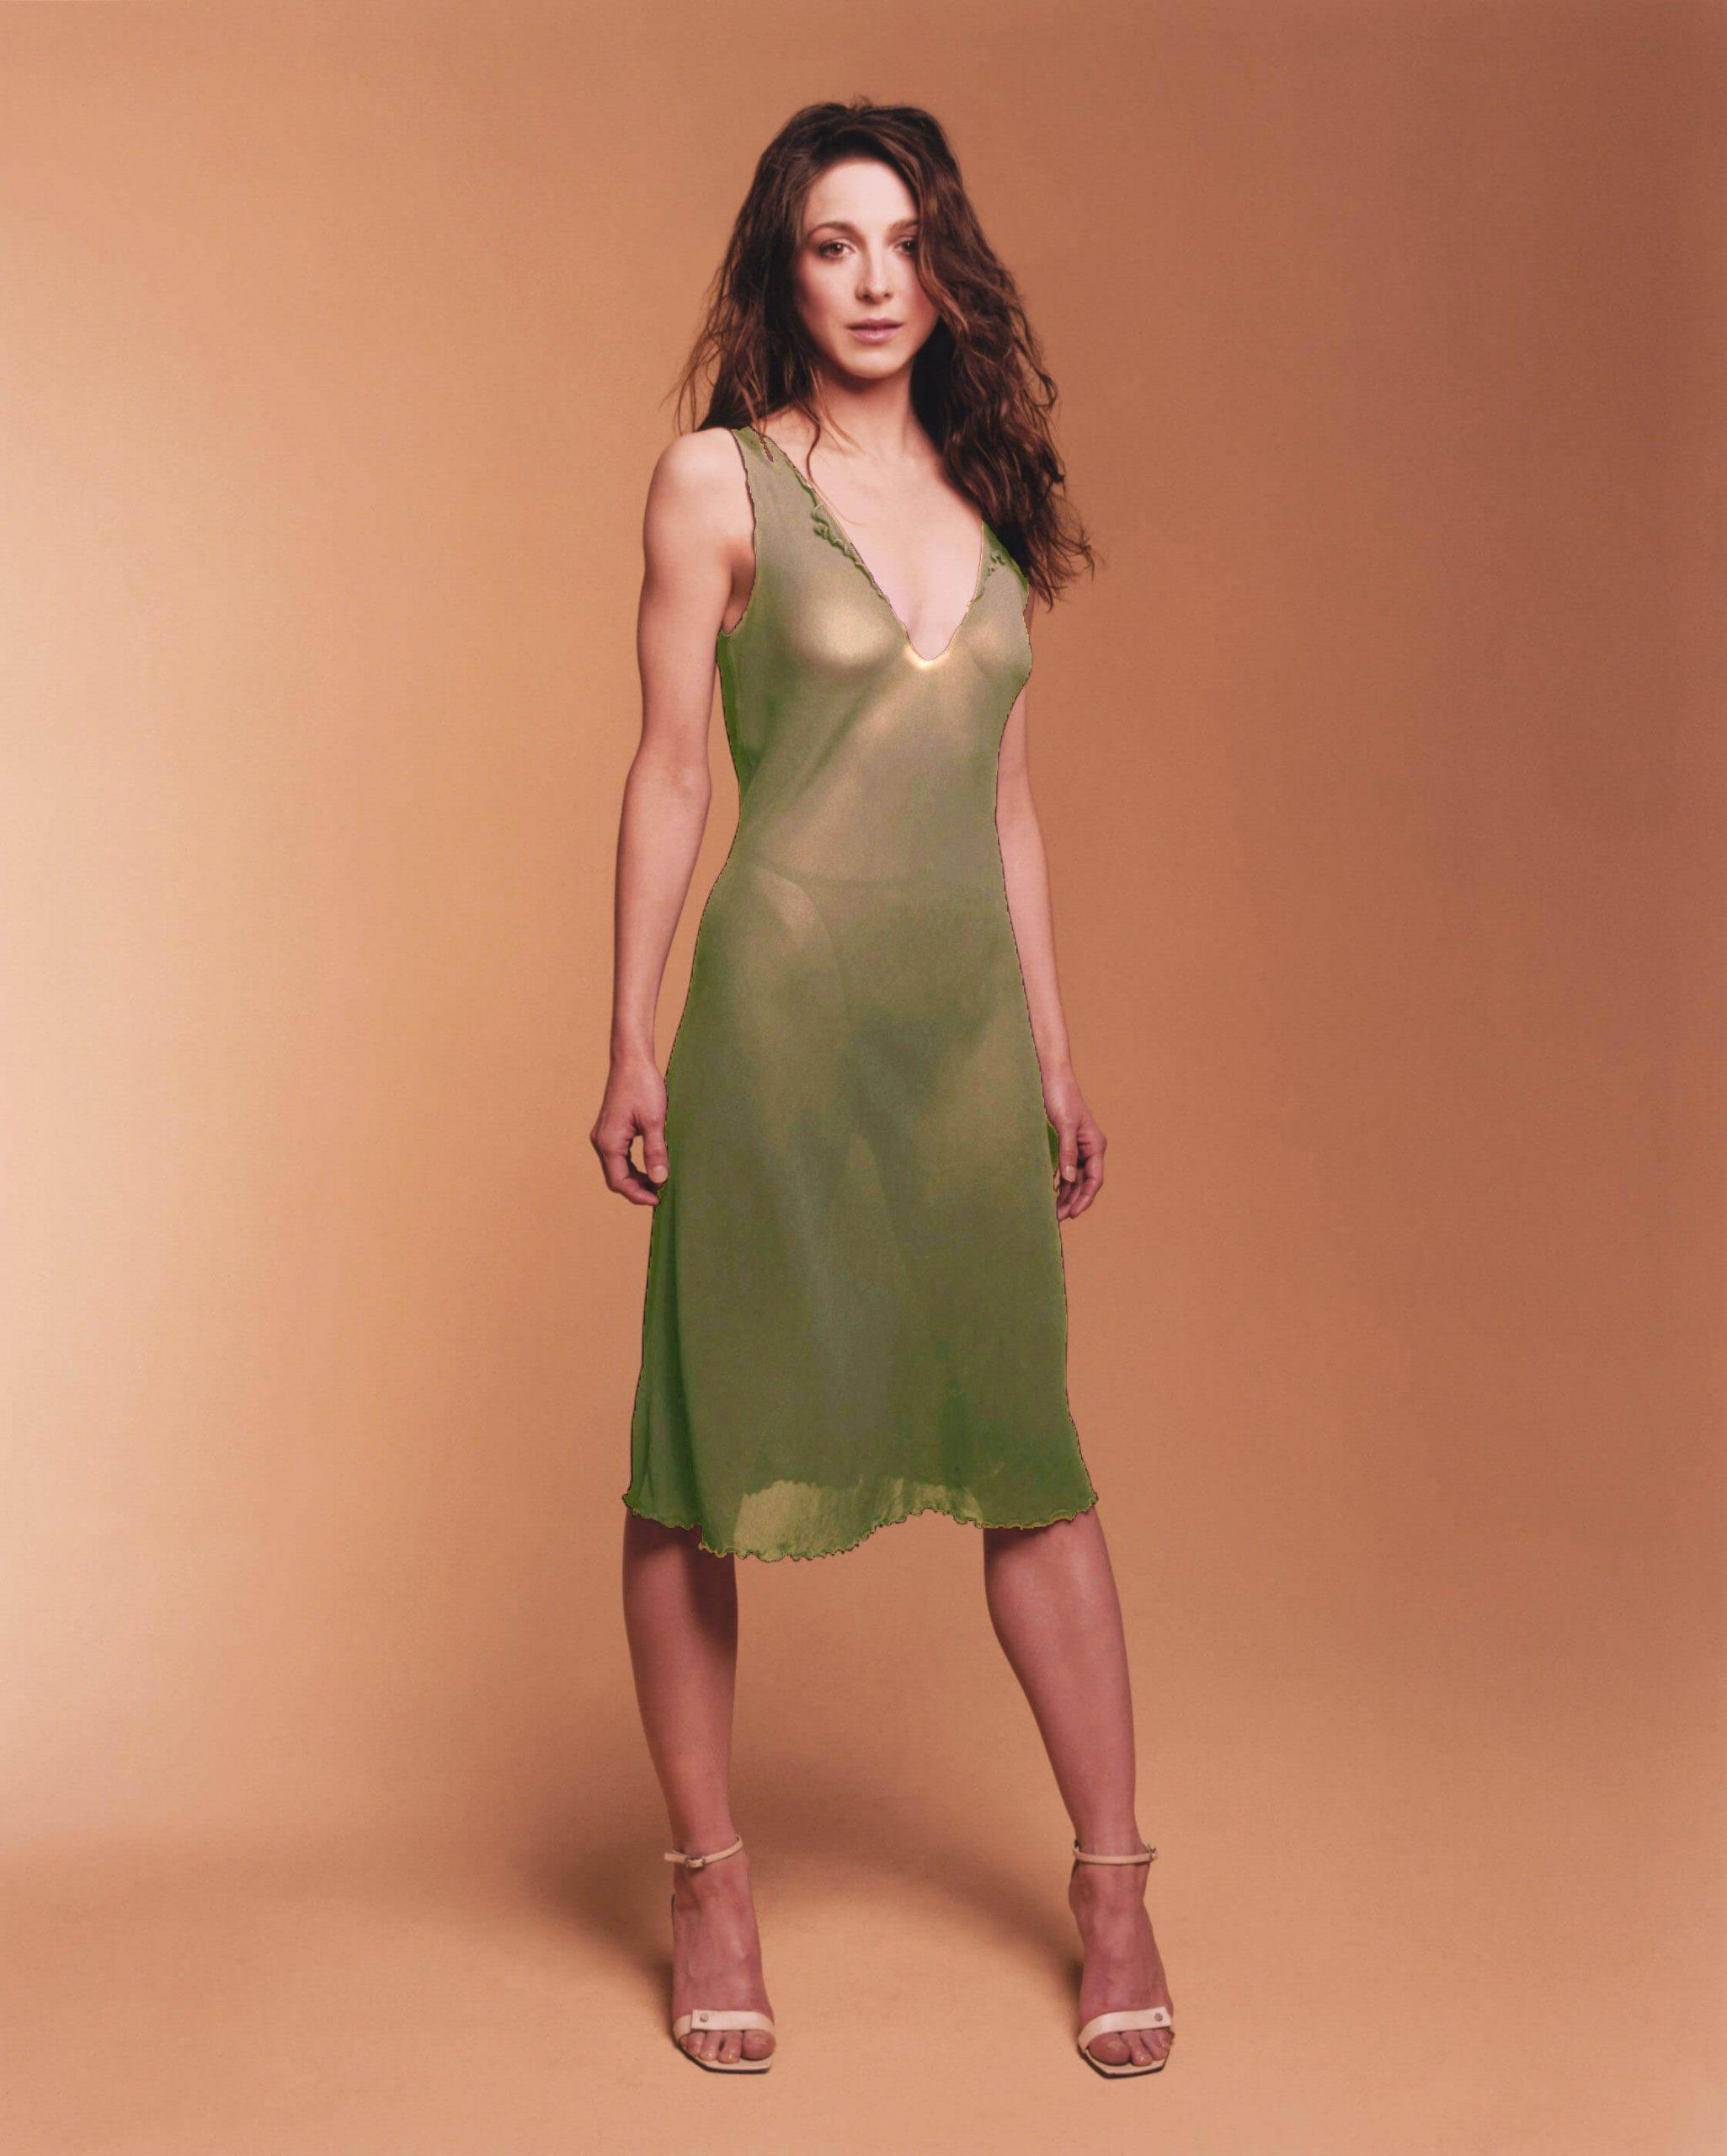 Marin Hinkle hot pictures